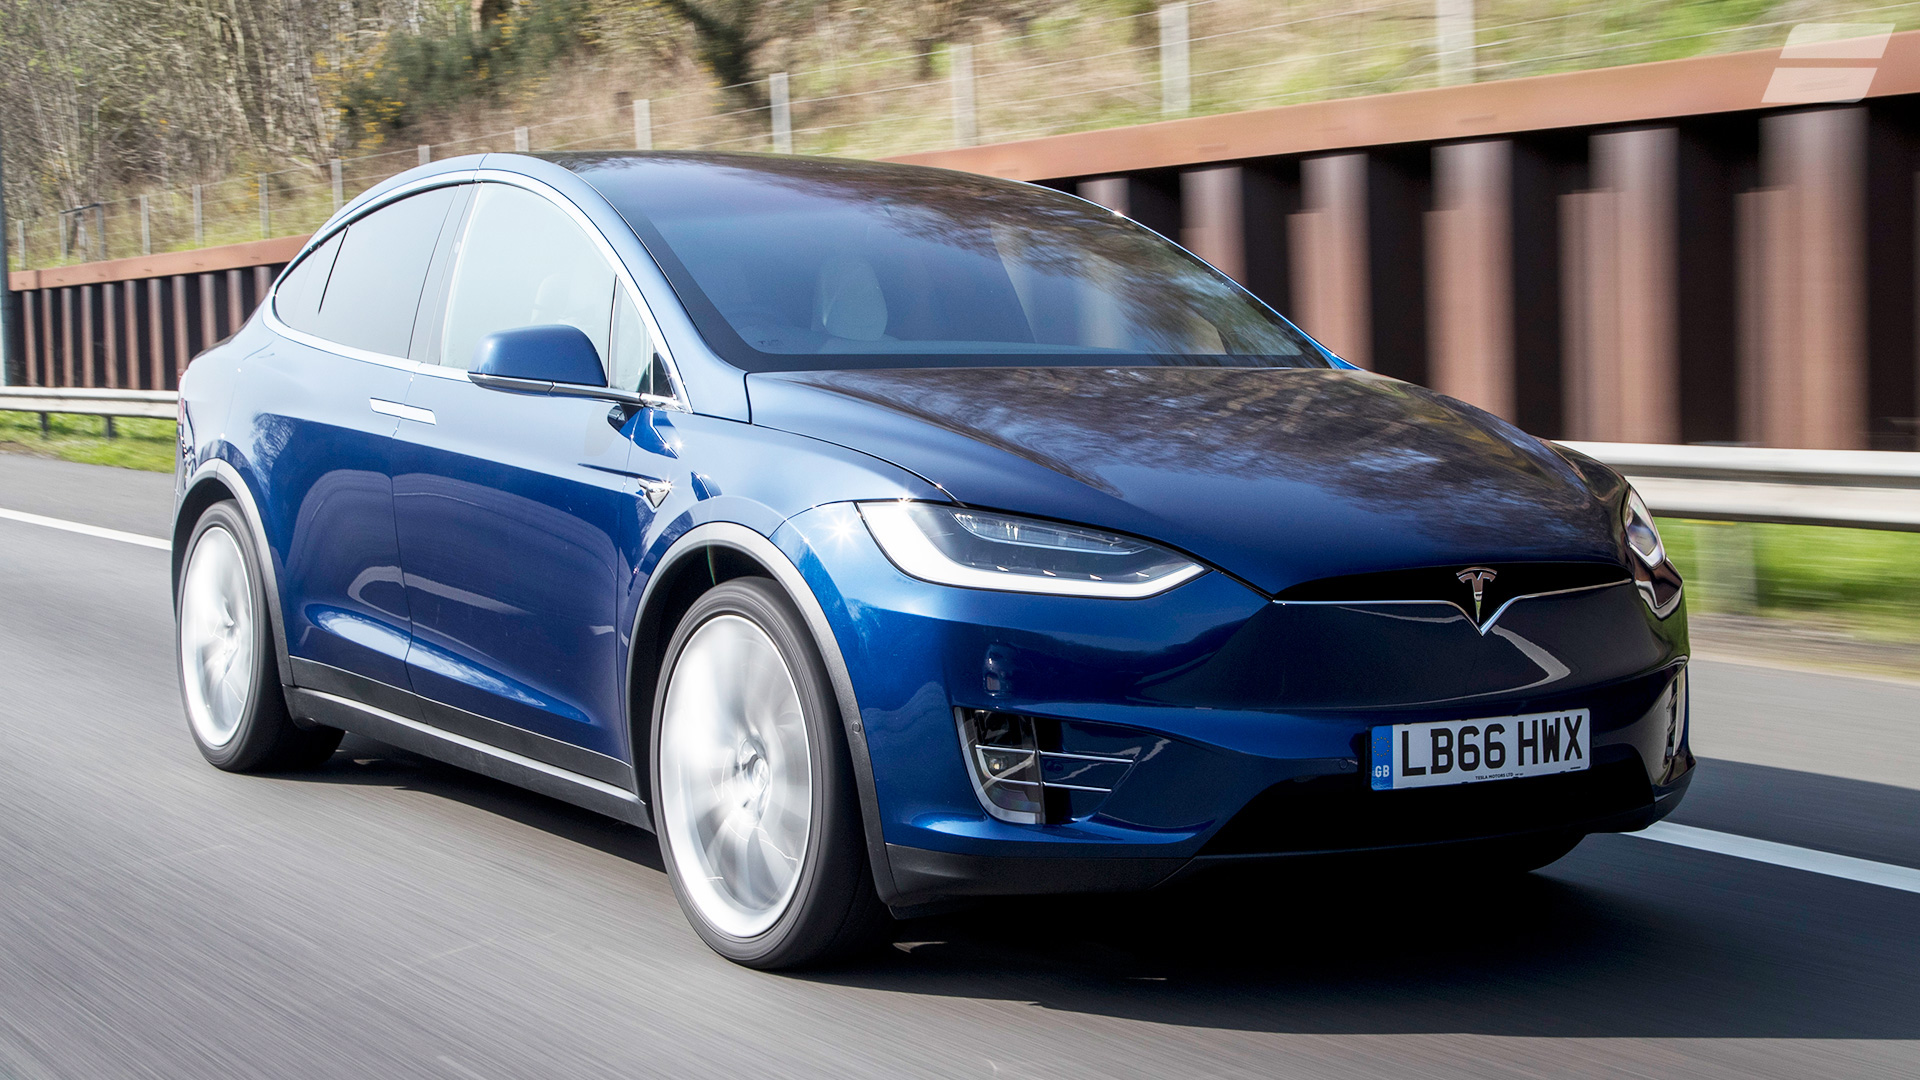 used tesla model x cars for sale on auto trader uk. Black Bedroom Furniture Sets. Home Design Ideas